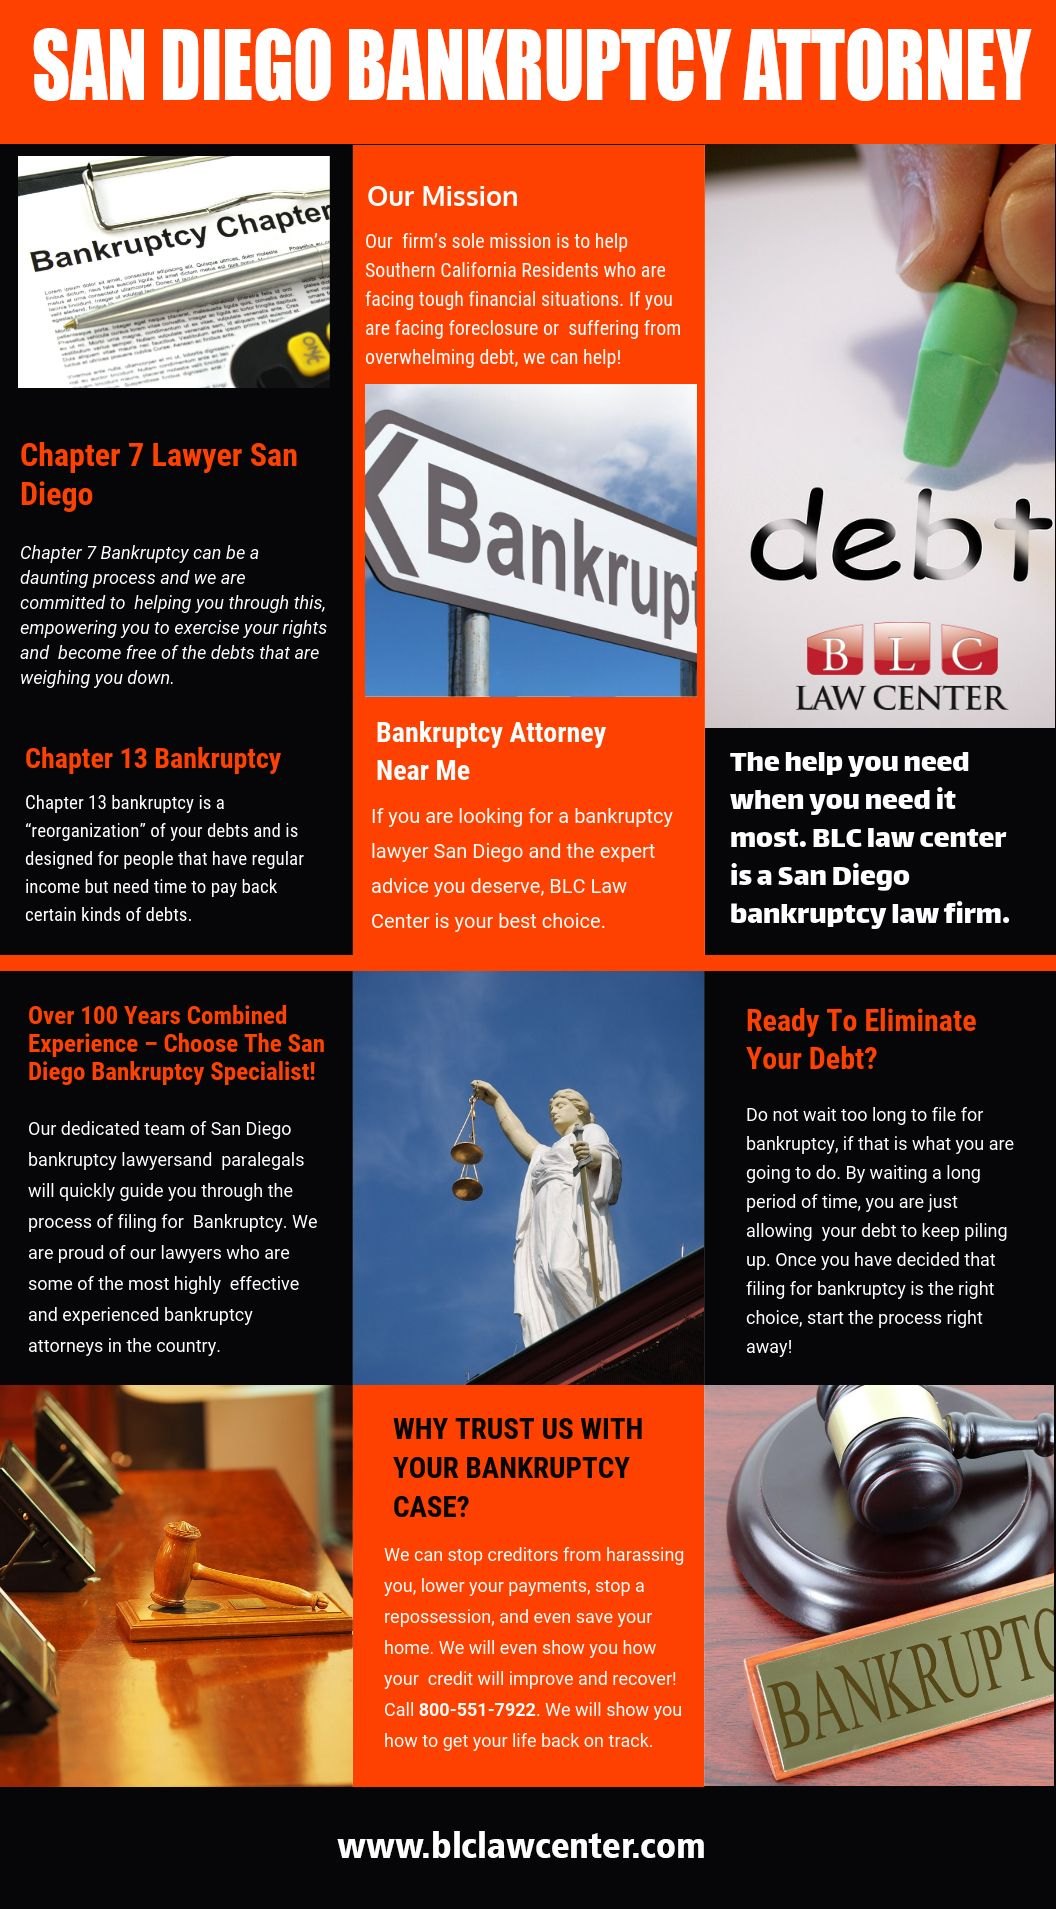 If you are facing bankruptcy, it can be a confusing time